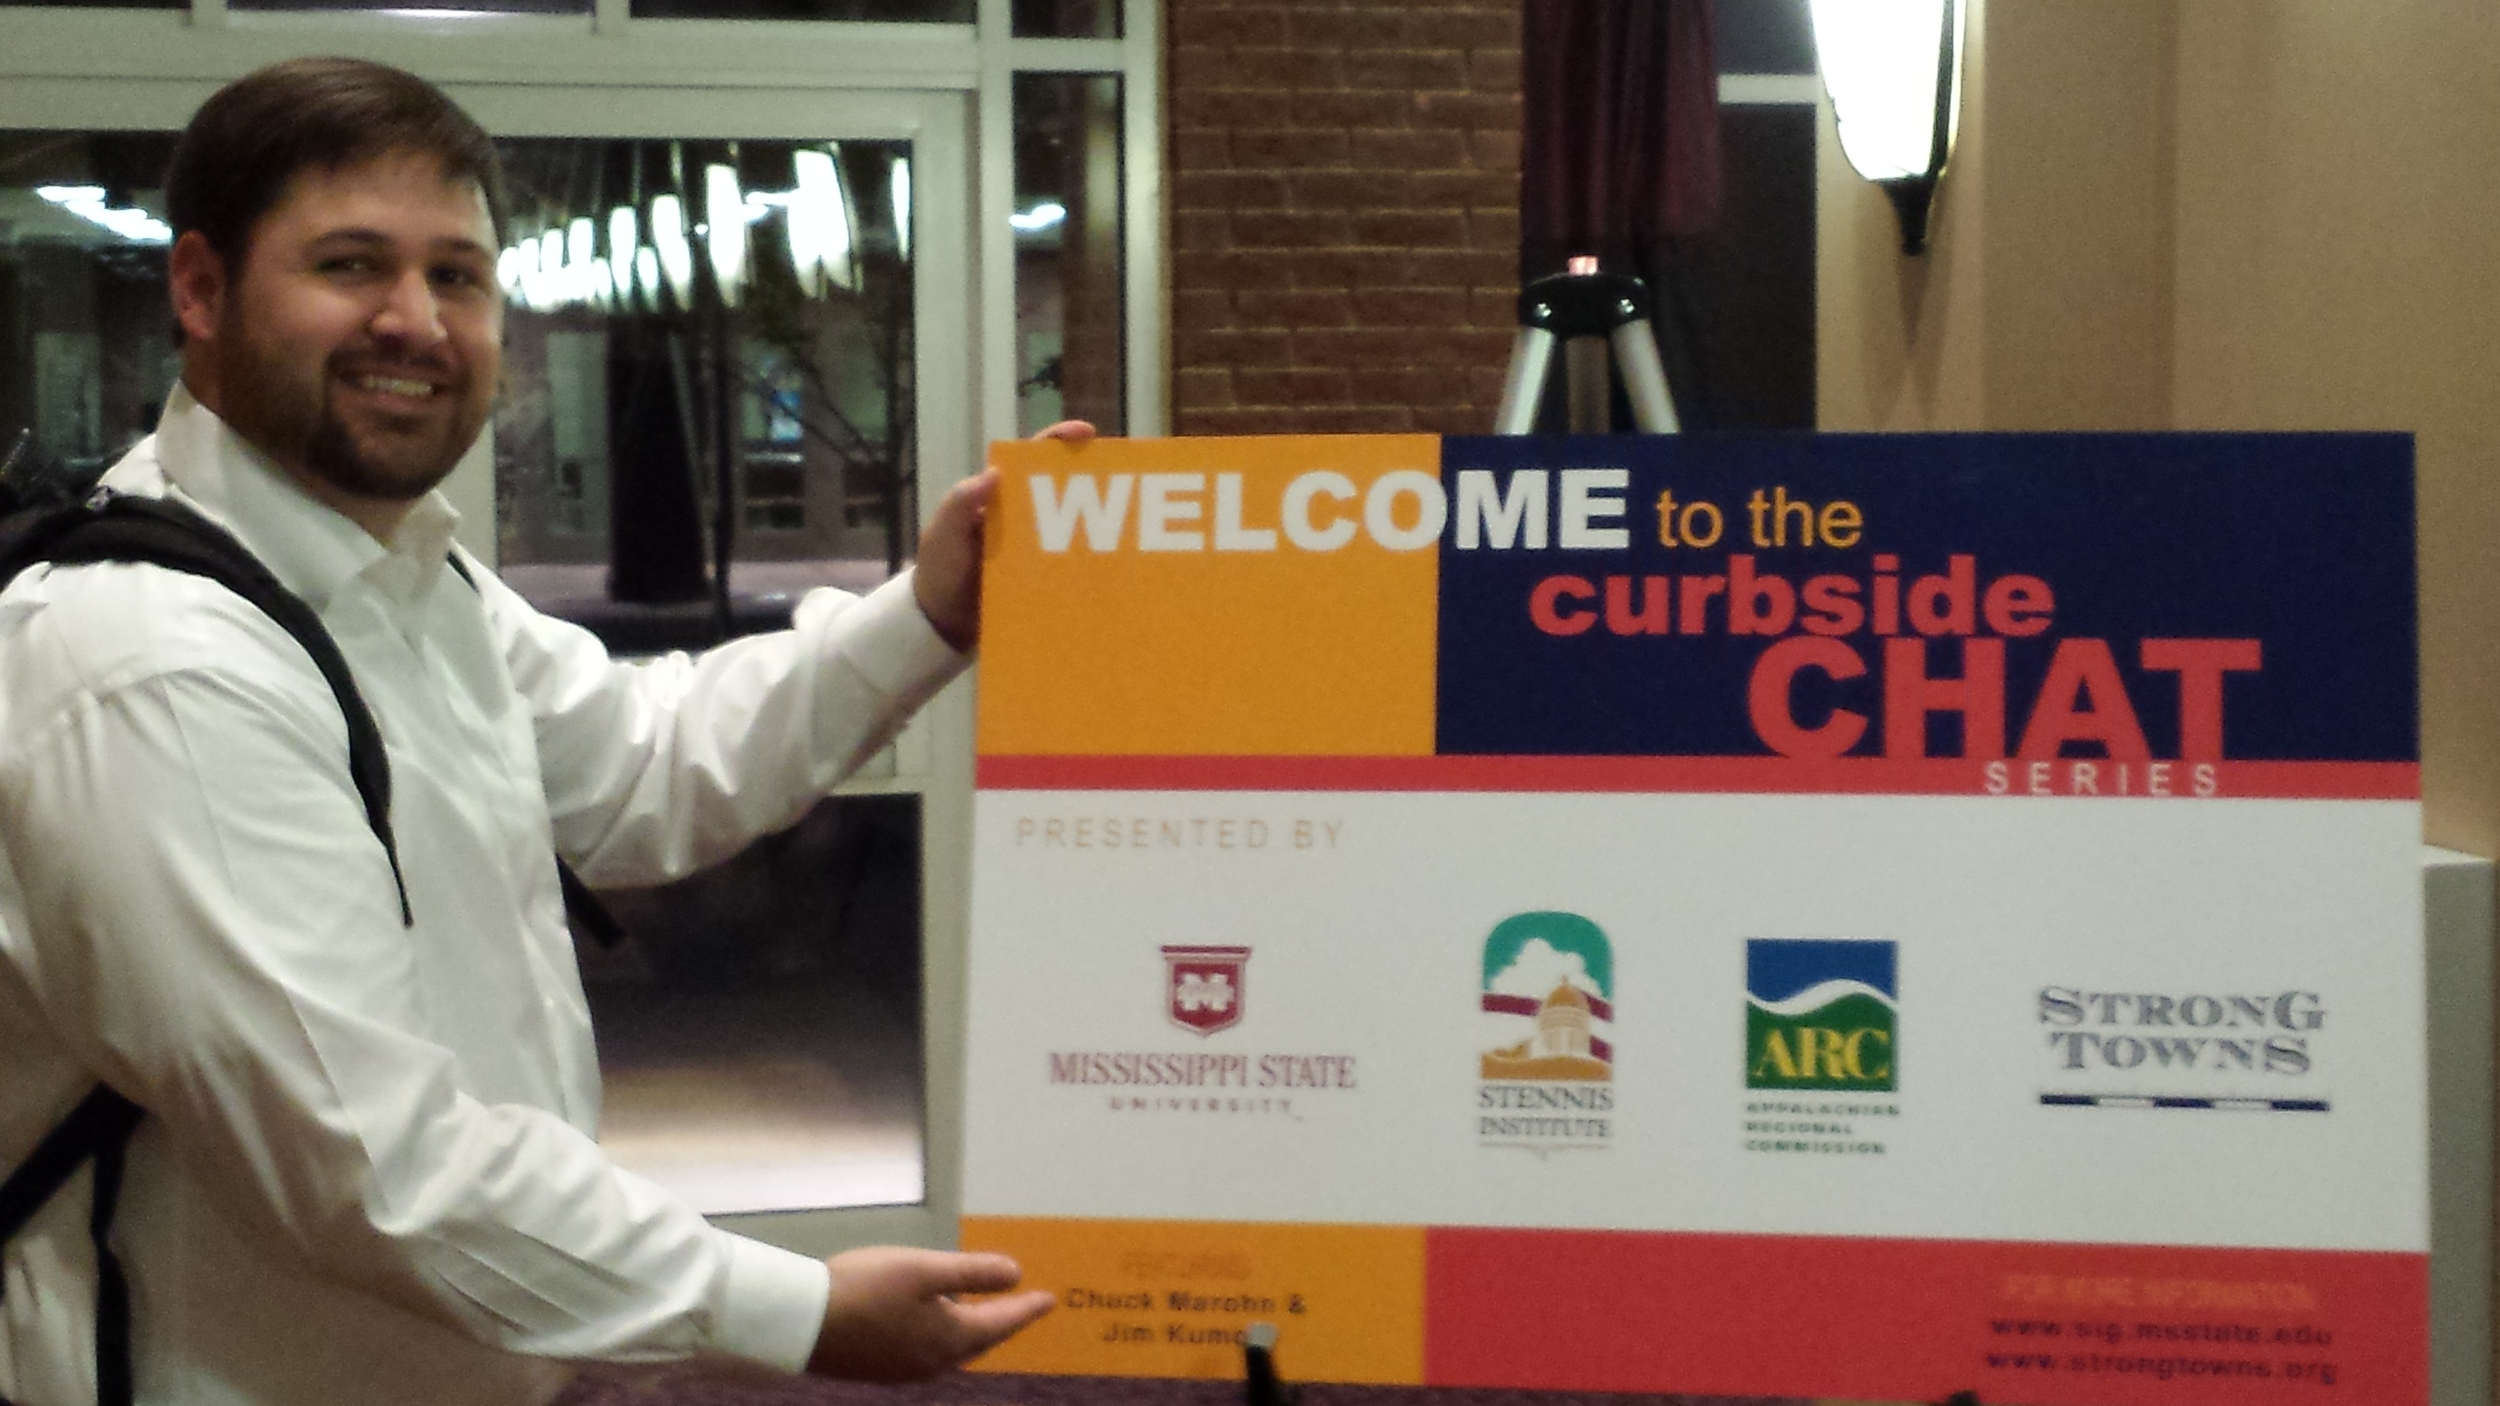 Jeremy Murdock, Mississippi State, kicking off a week of Curbside Chats across the state.